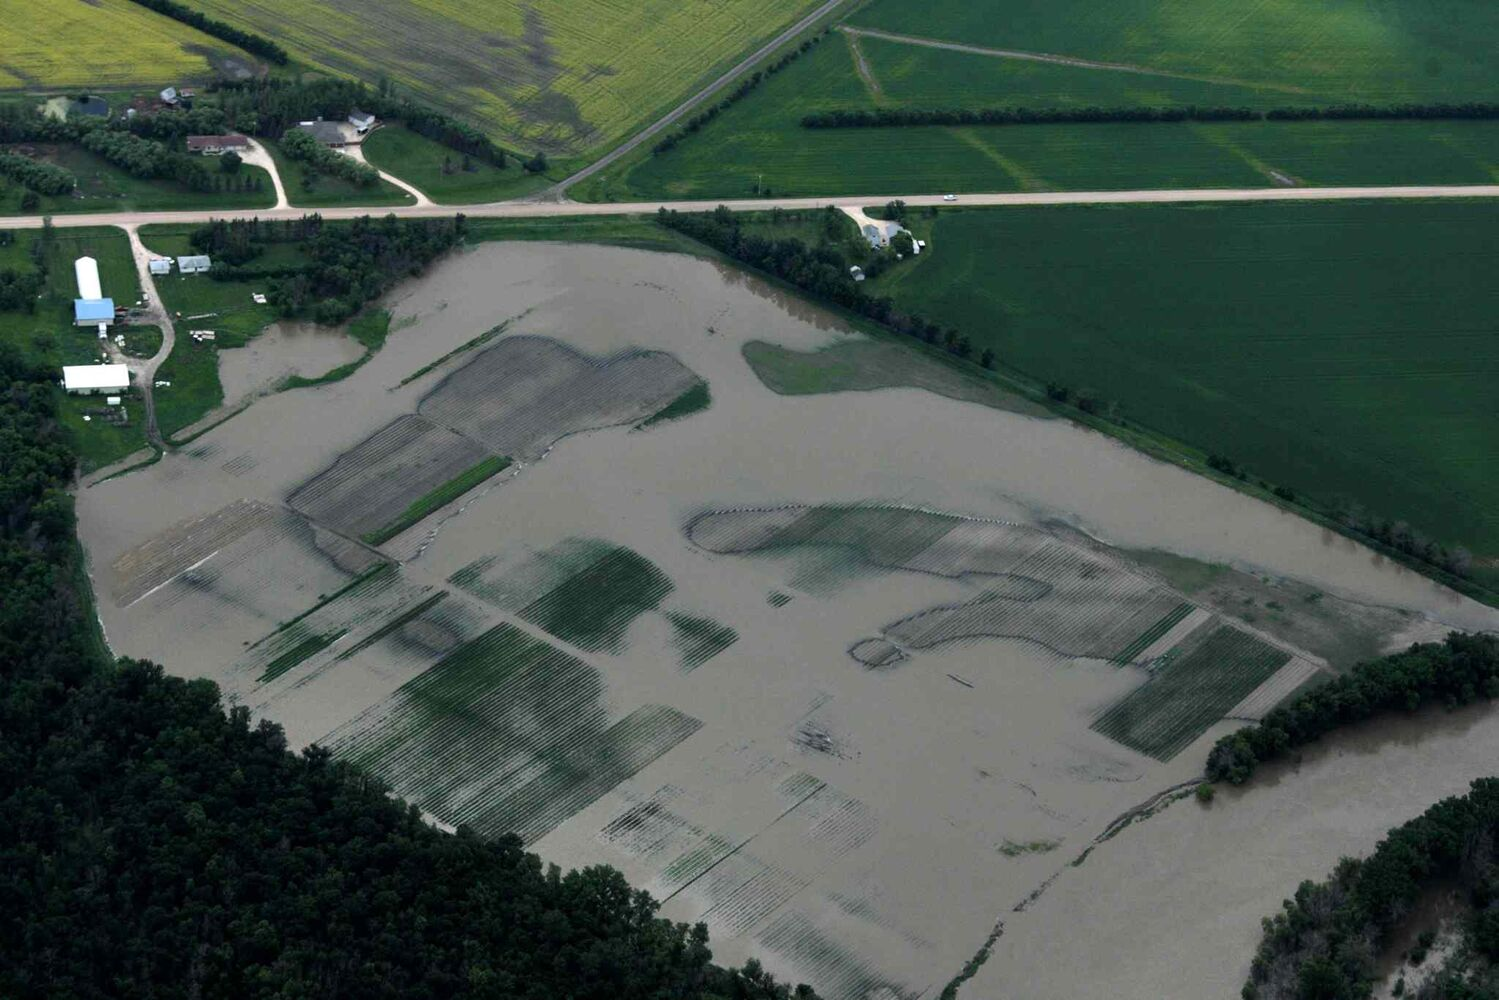 Aerial photo showing a flooded field east of  Portage la Prairie area.  (RUTH BONNEVILLE / WINNIPEG FREE PRESS)